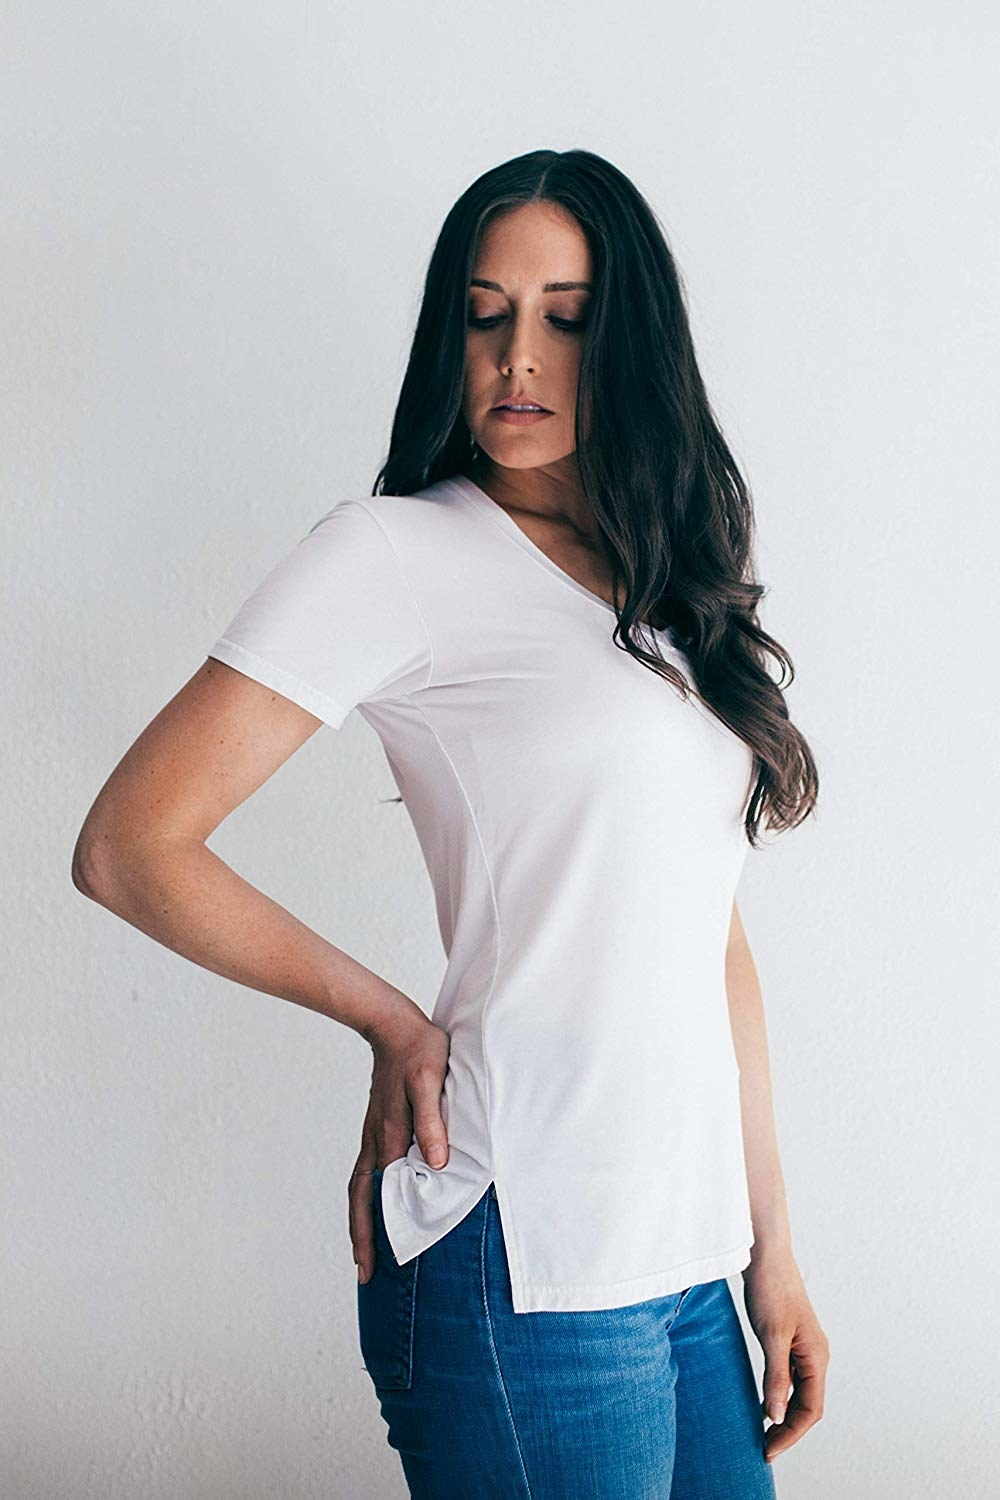 A model in the white tee with small vents on the sides